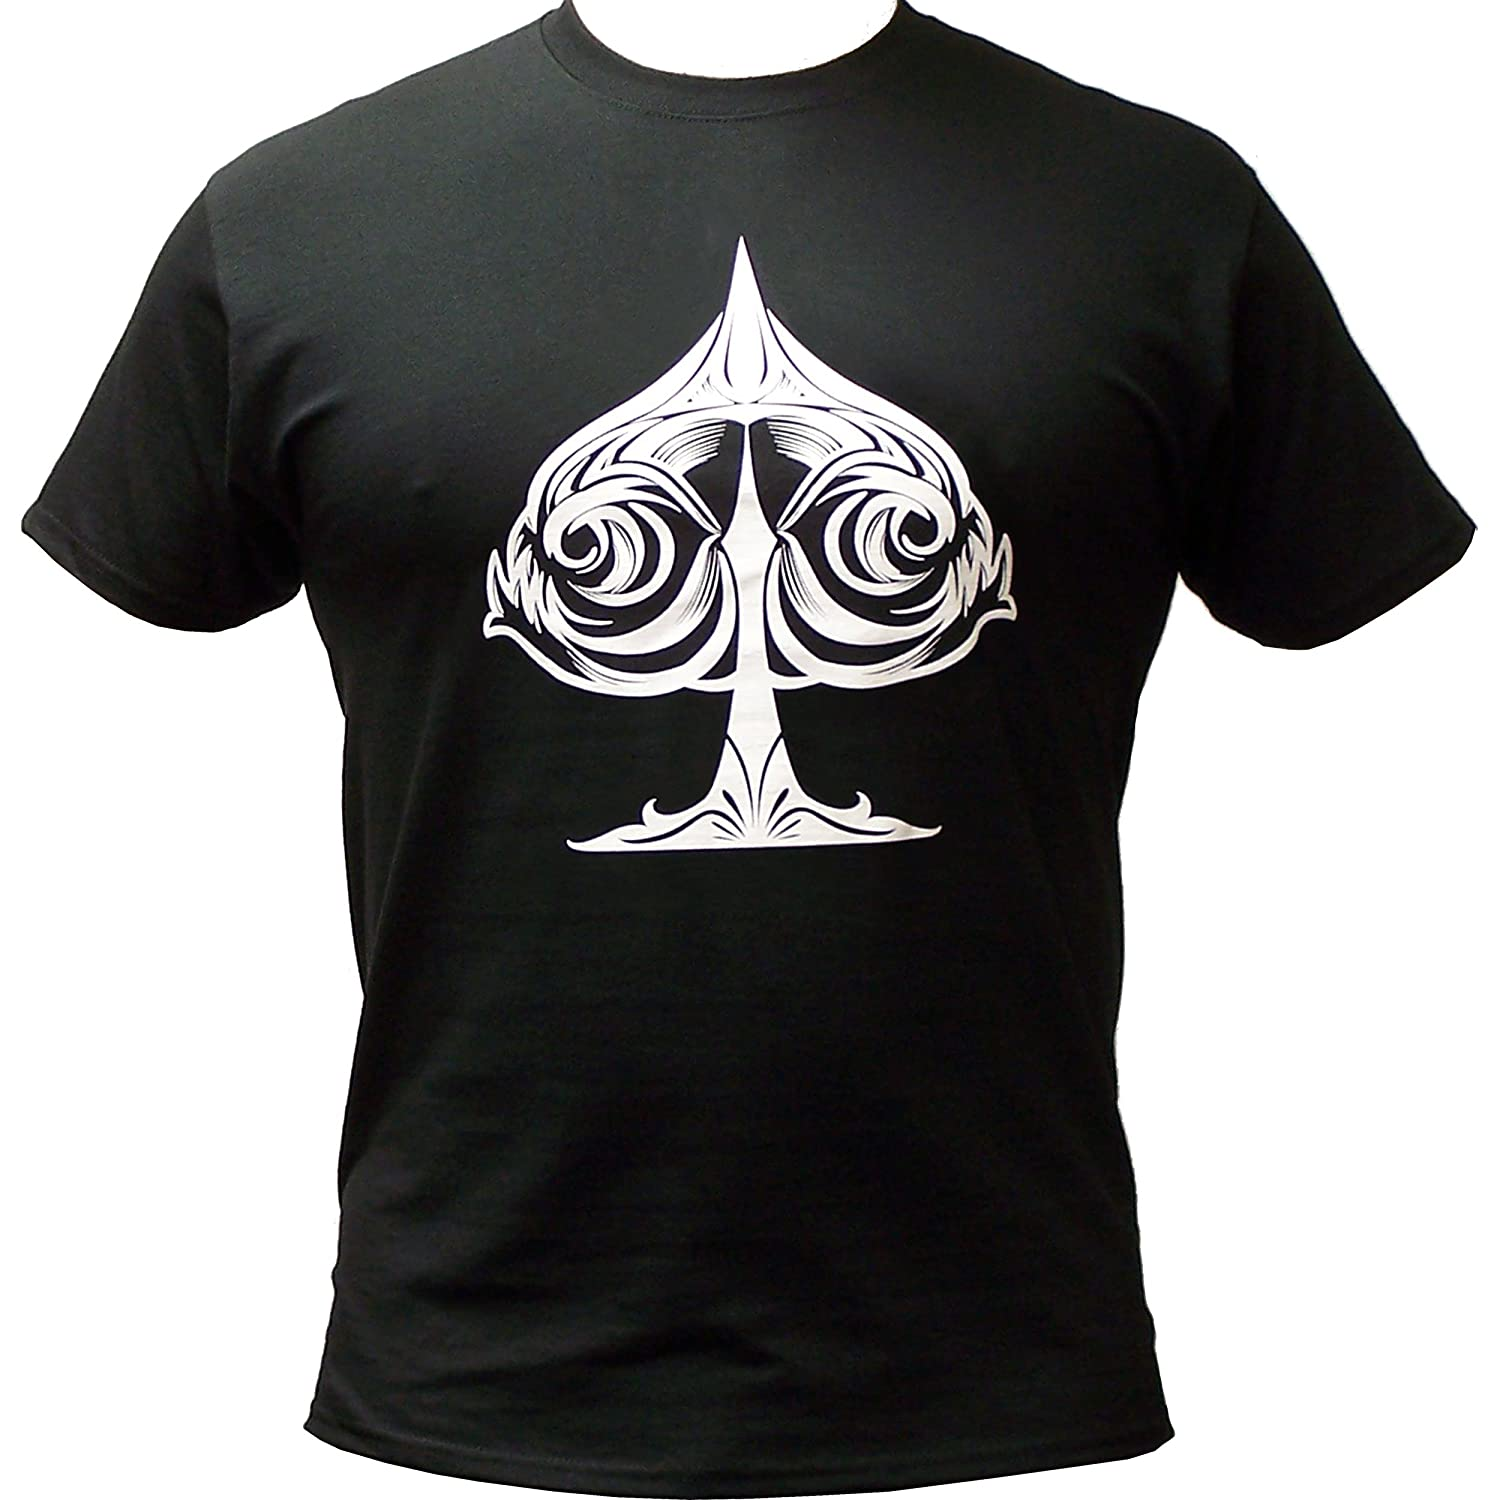 """ACE"" Design t-shirt from Piranha Gear"